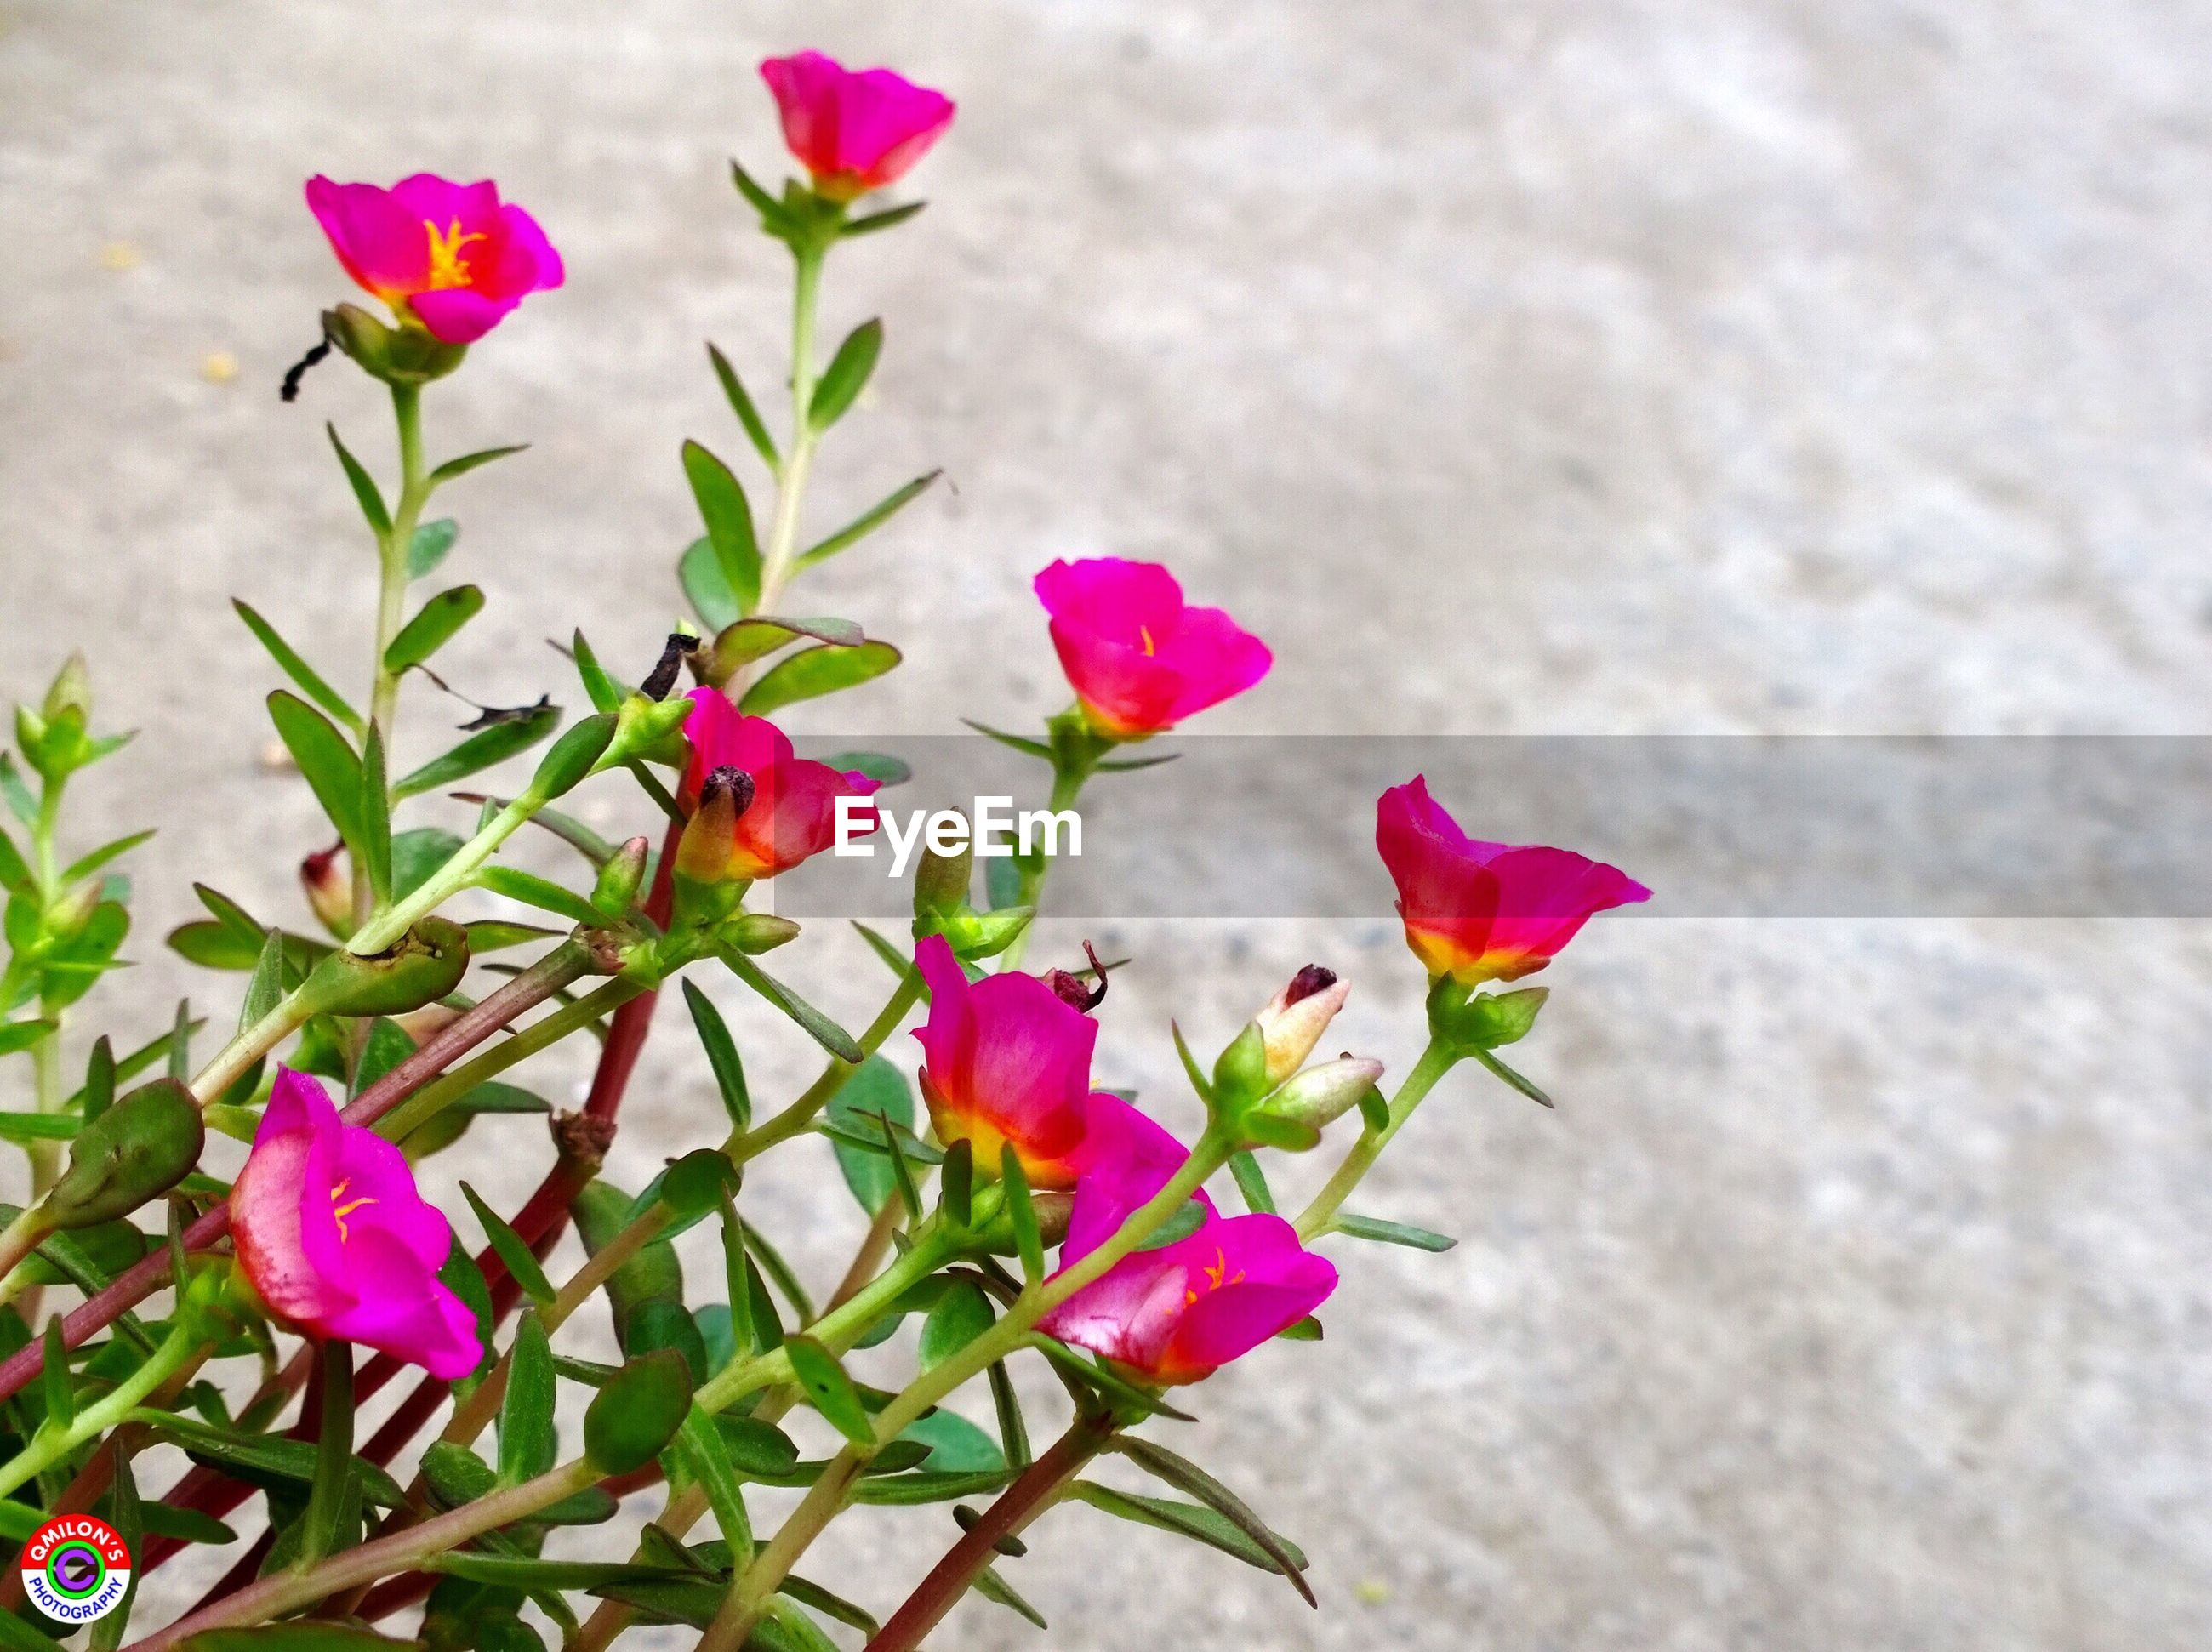 flower, petal, freshness, fragility, pink color, growth, flower head, beauty in nature, leaf, plant, nature, stem, blooming, close-up, pink, in bloom, blossom, bud, botany, day, outdoors, no people, focus on foreground, growing, selective focus, softness